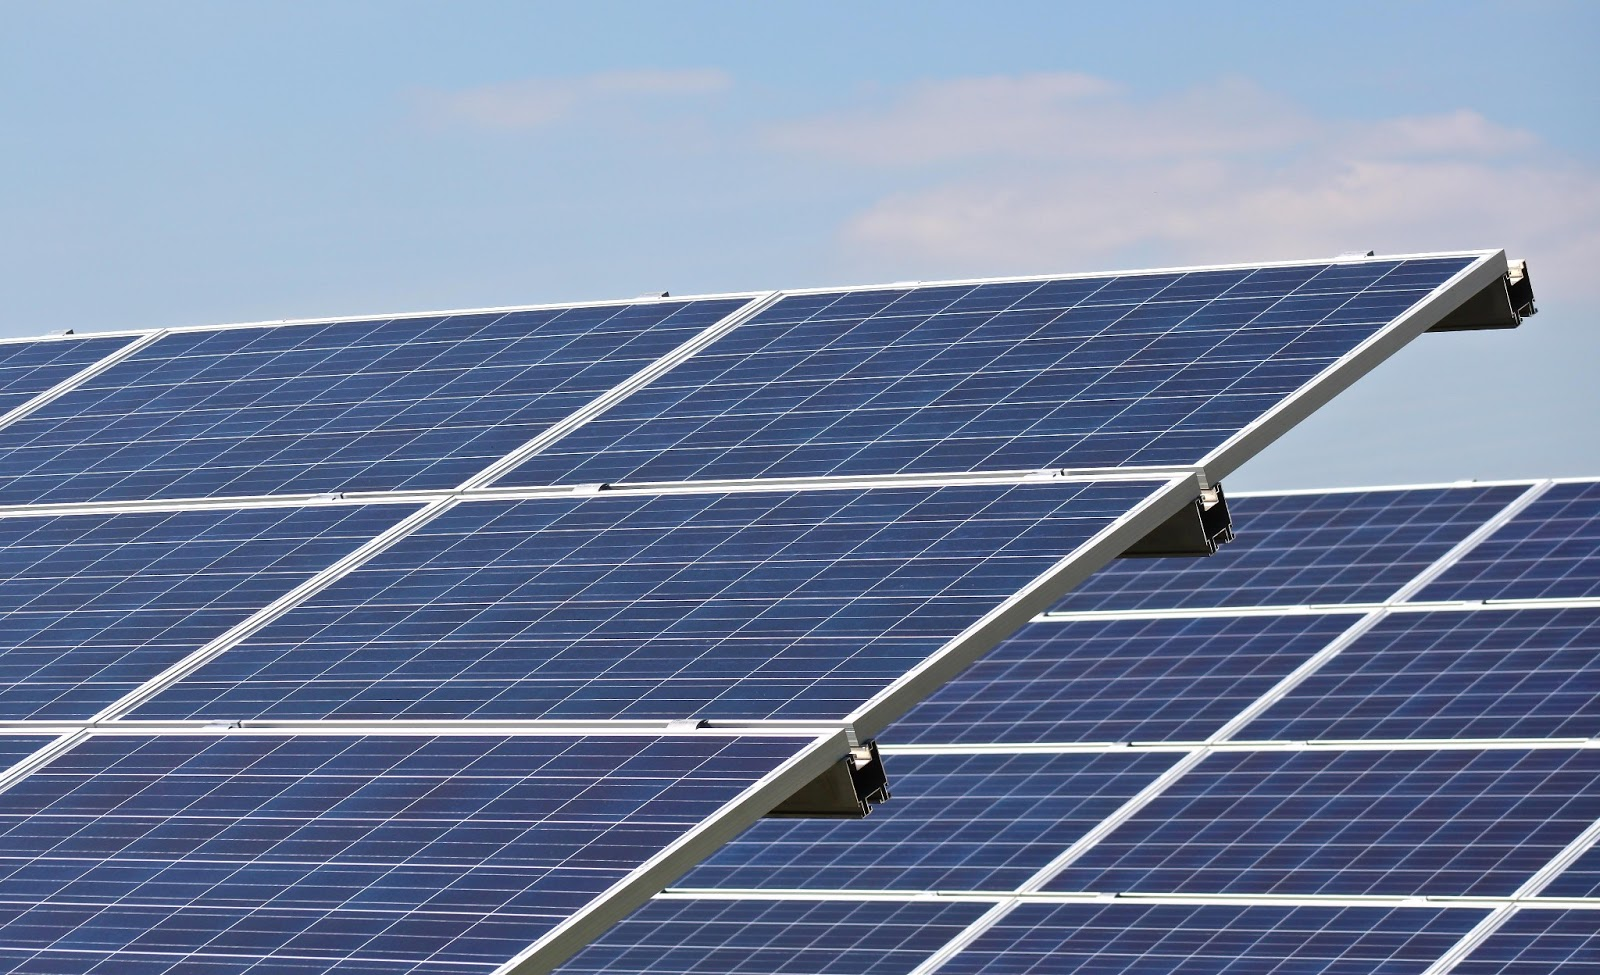 Romania might lose some €4 bln ivestments in renewable energy